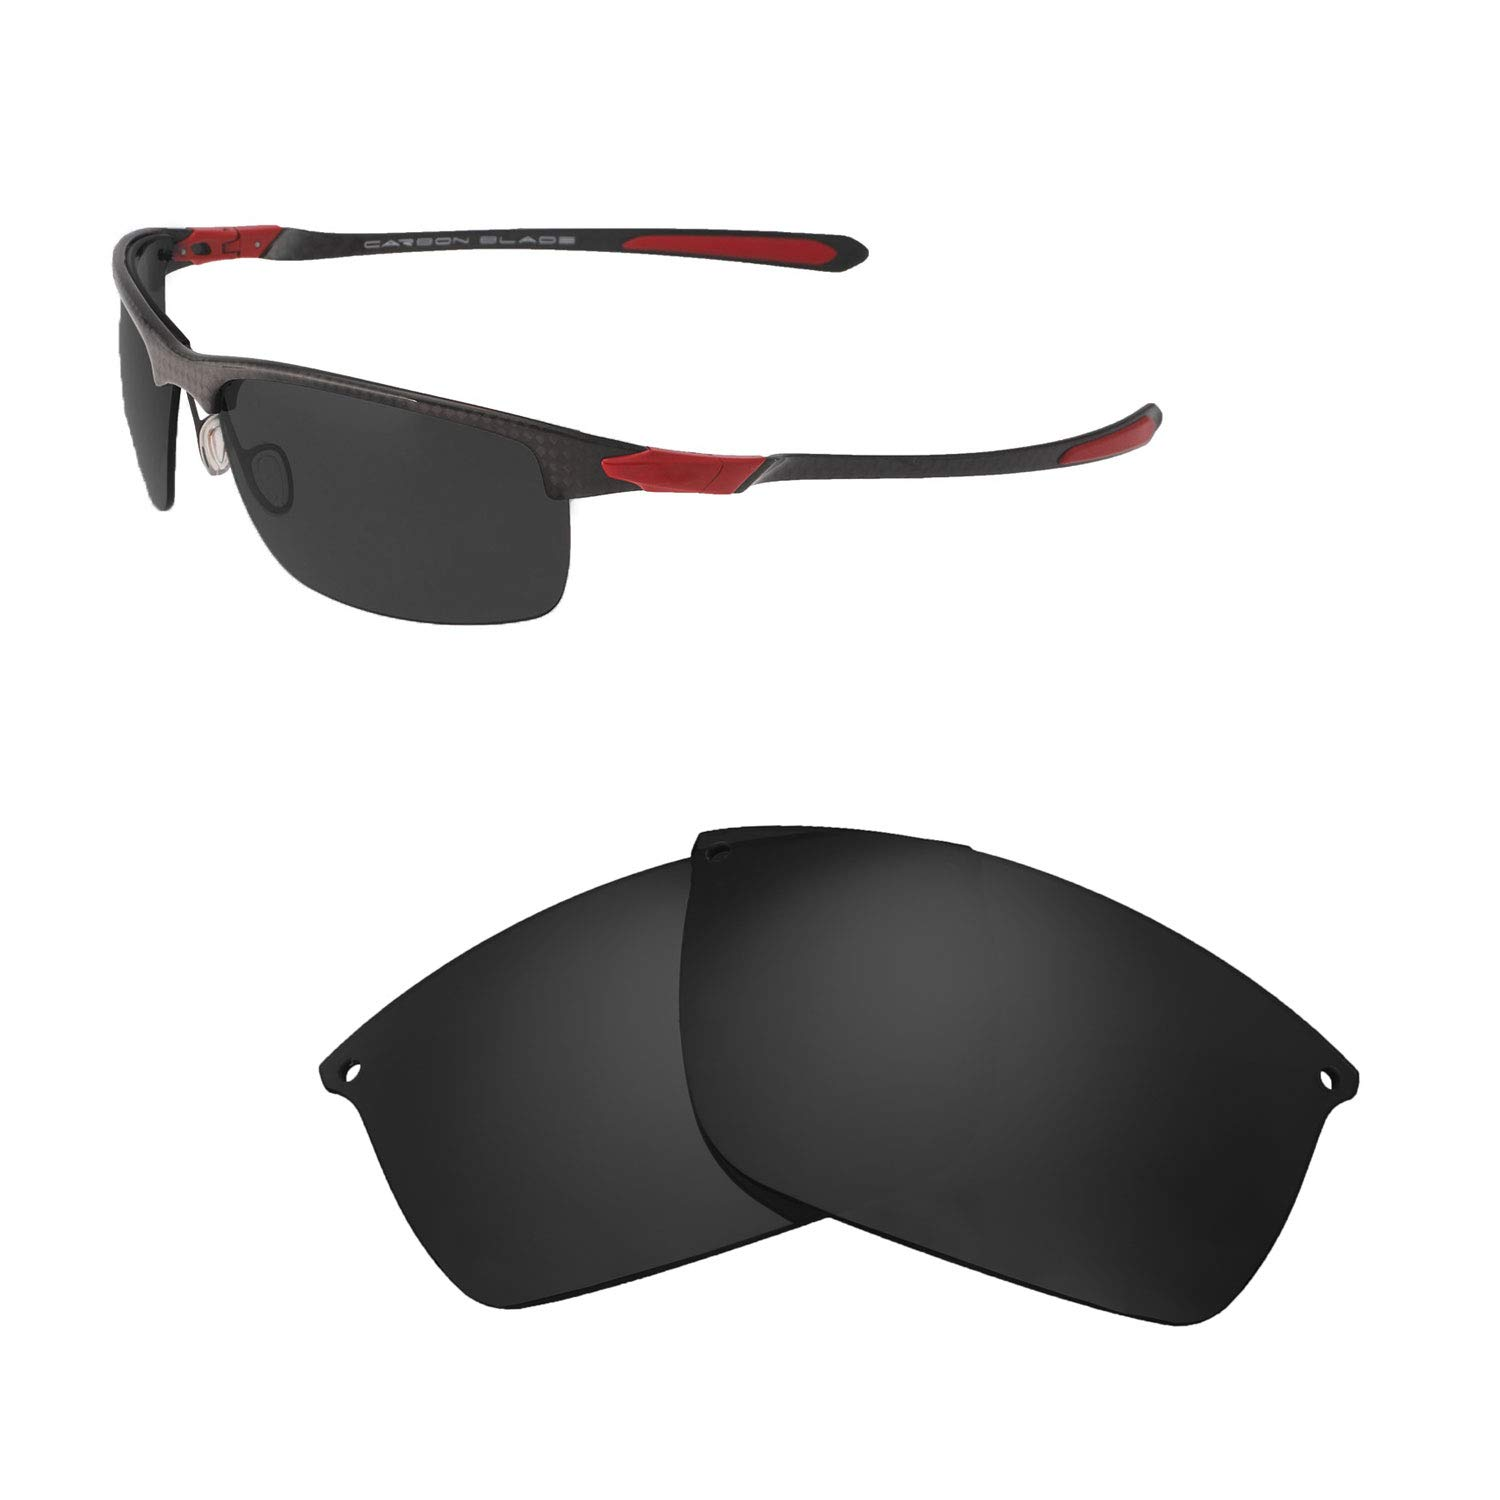 ef10fe6a74a Amazon.com  Walleva Replacement Lenses for Oakley Carbon Blade Sunglasses -  Multiple Options Available (Black - Polarized)  Sports   Outdoors